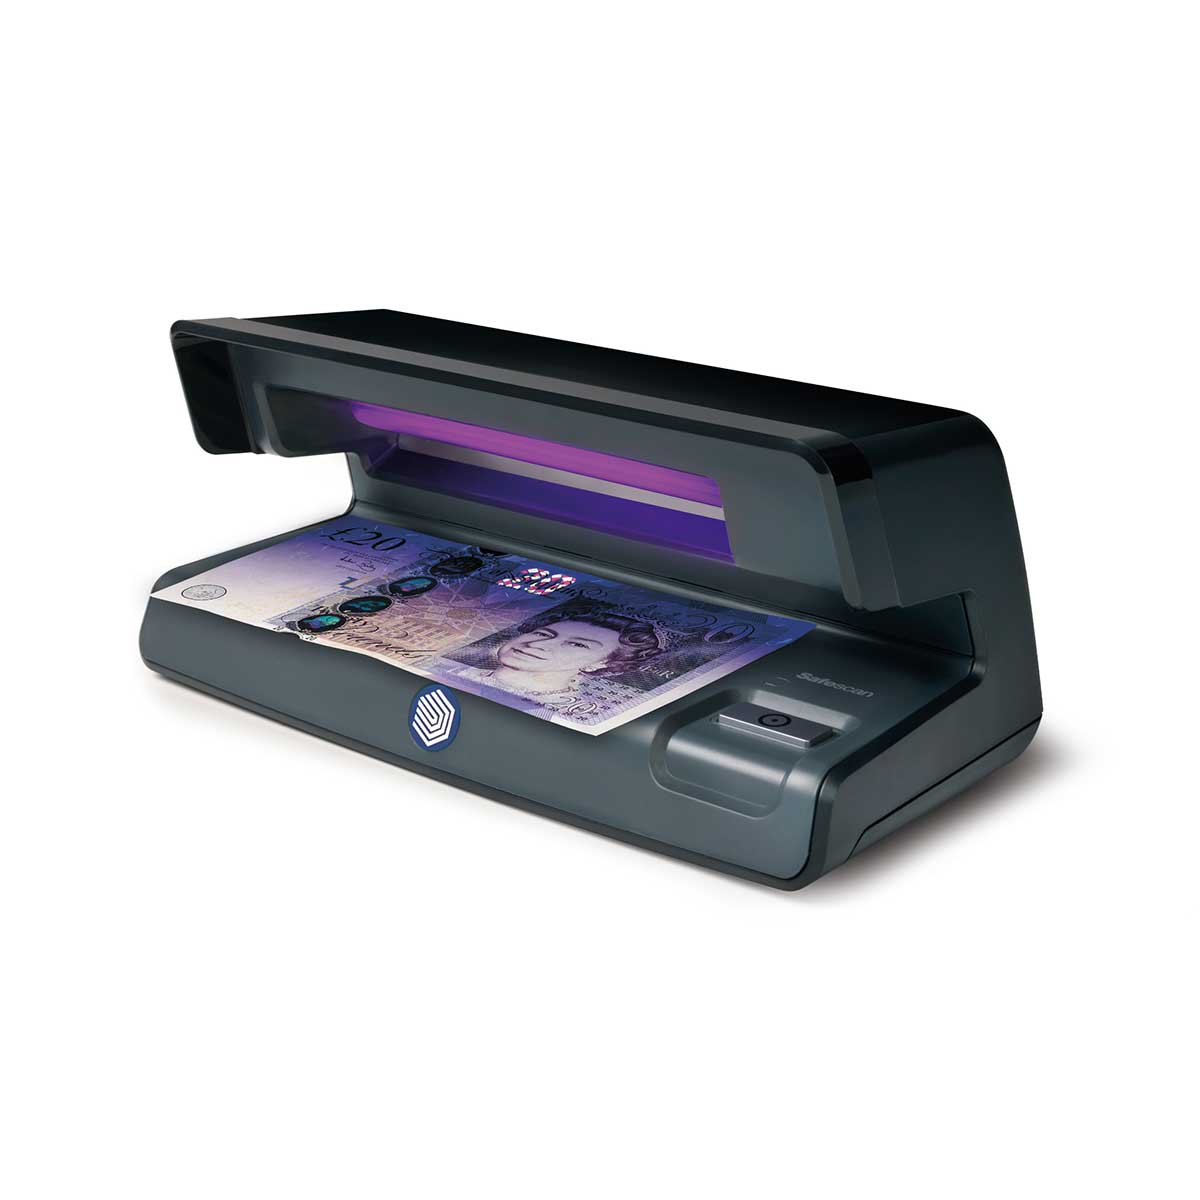 Safescan 50 UV Counterfeit Detector - Black